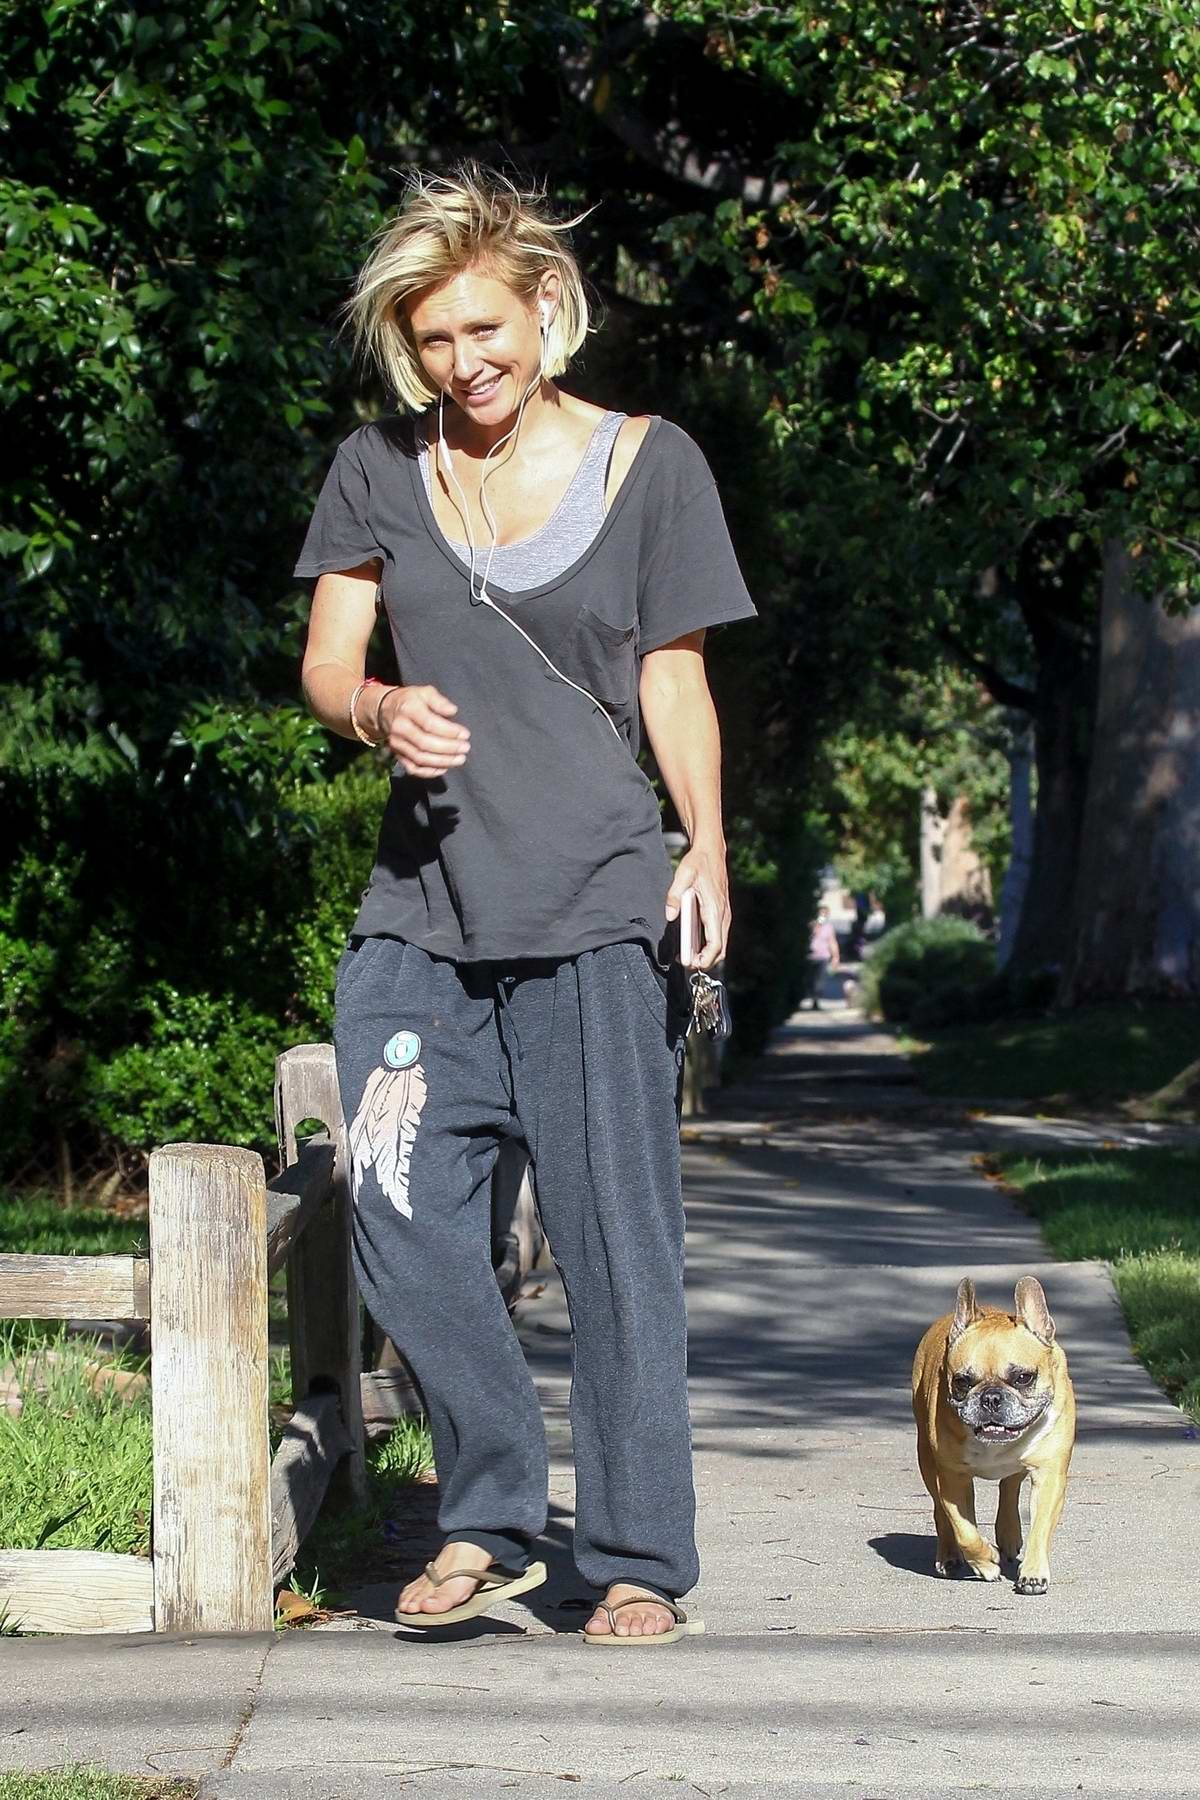 Nicky Whelan keeps it casual and make-up free while walking her dog in Sherman Oaks, California